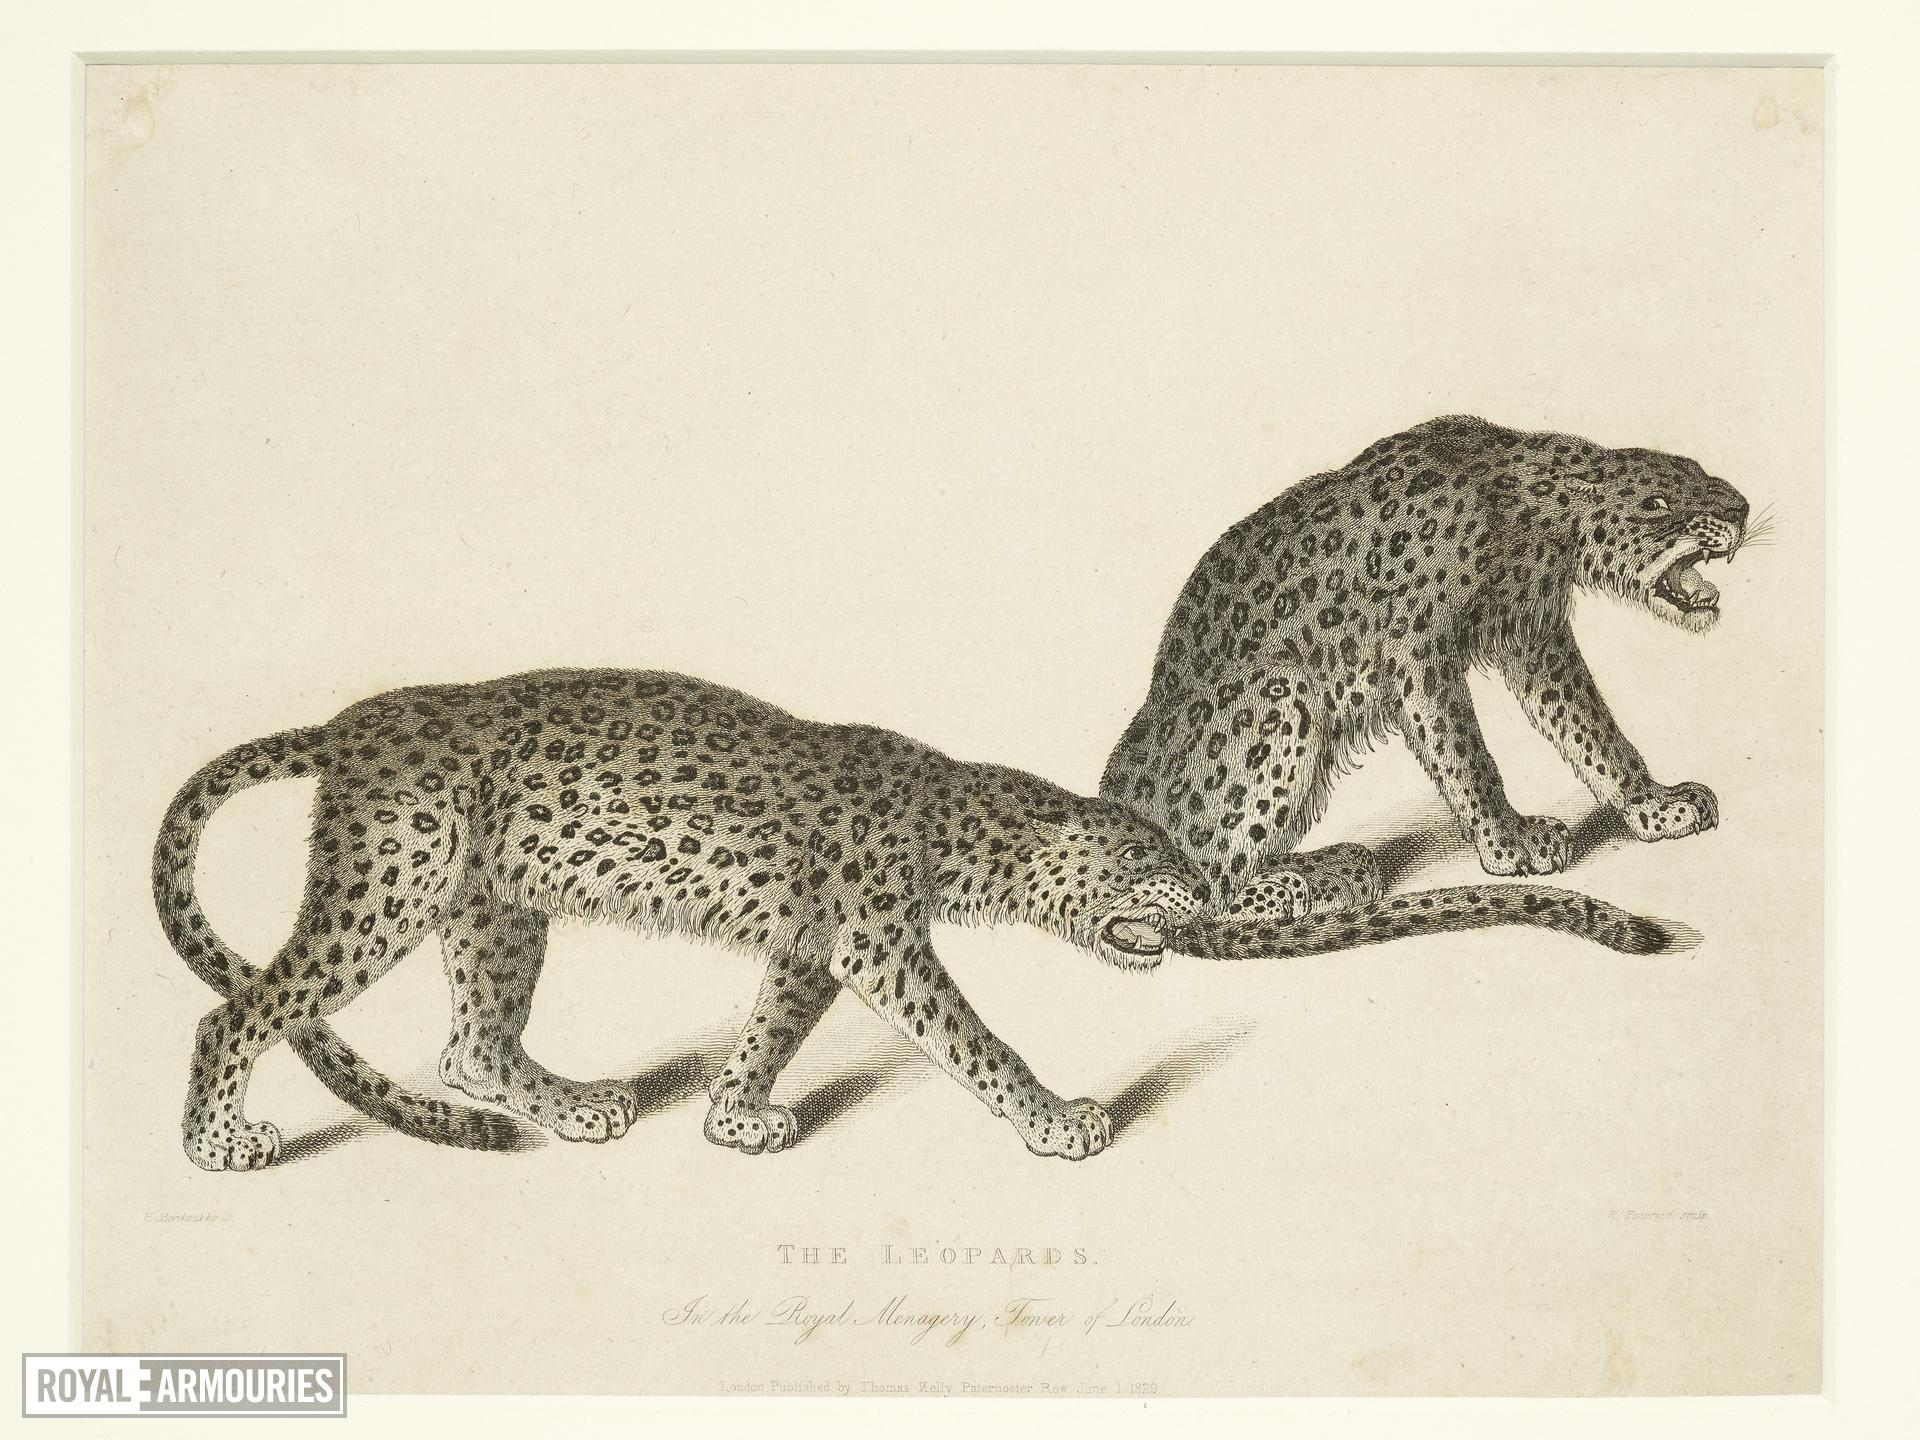 Print Entitled 'The Leopards in the Royal Menagery, Tower of London', dated 1 June, 1829.